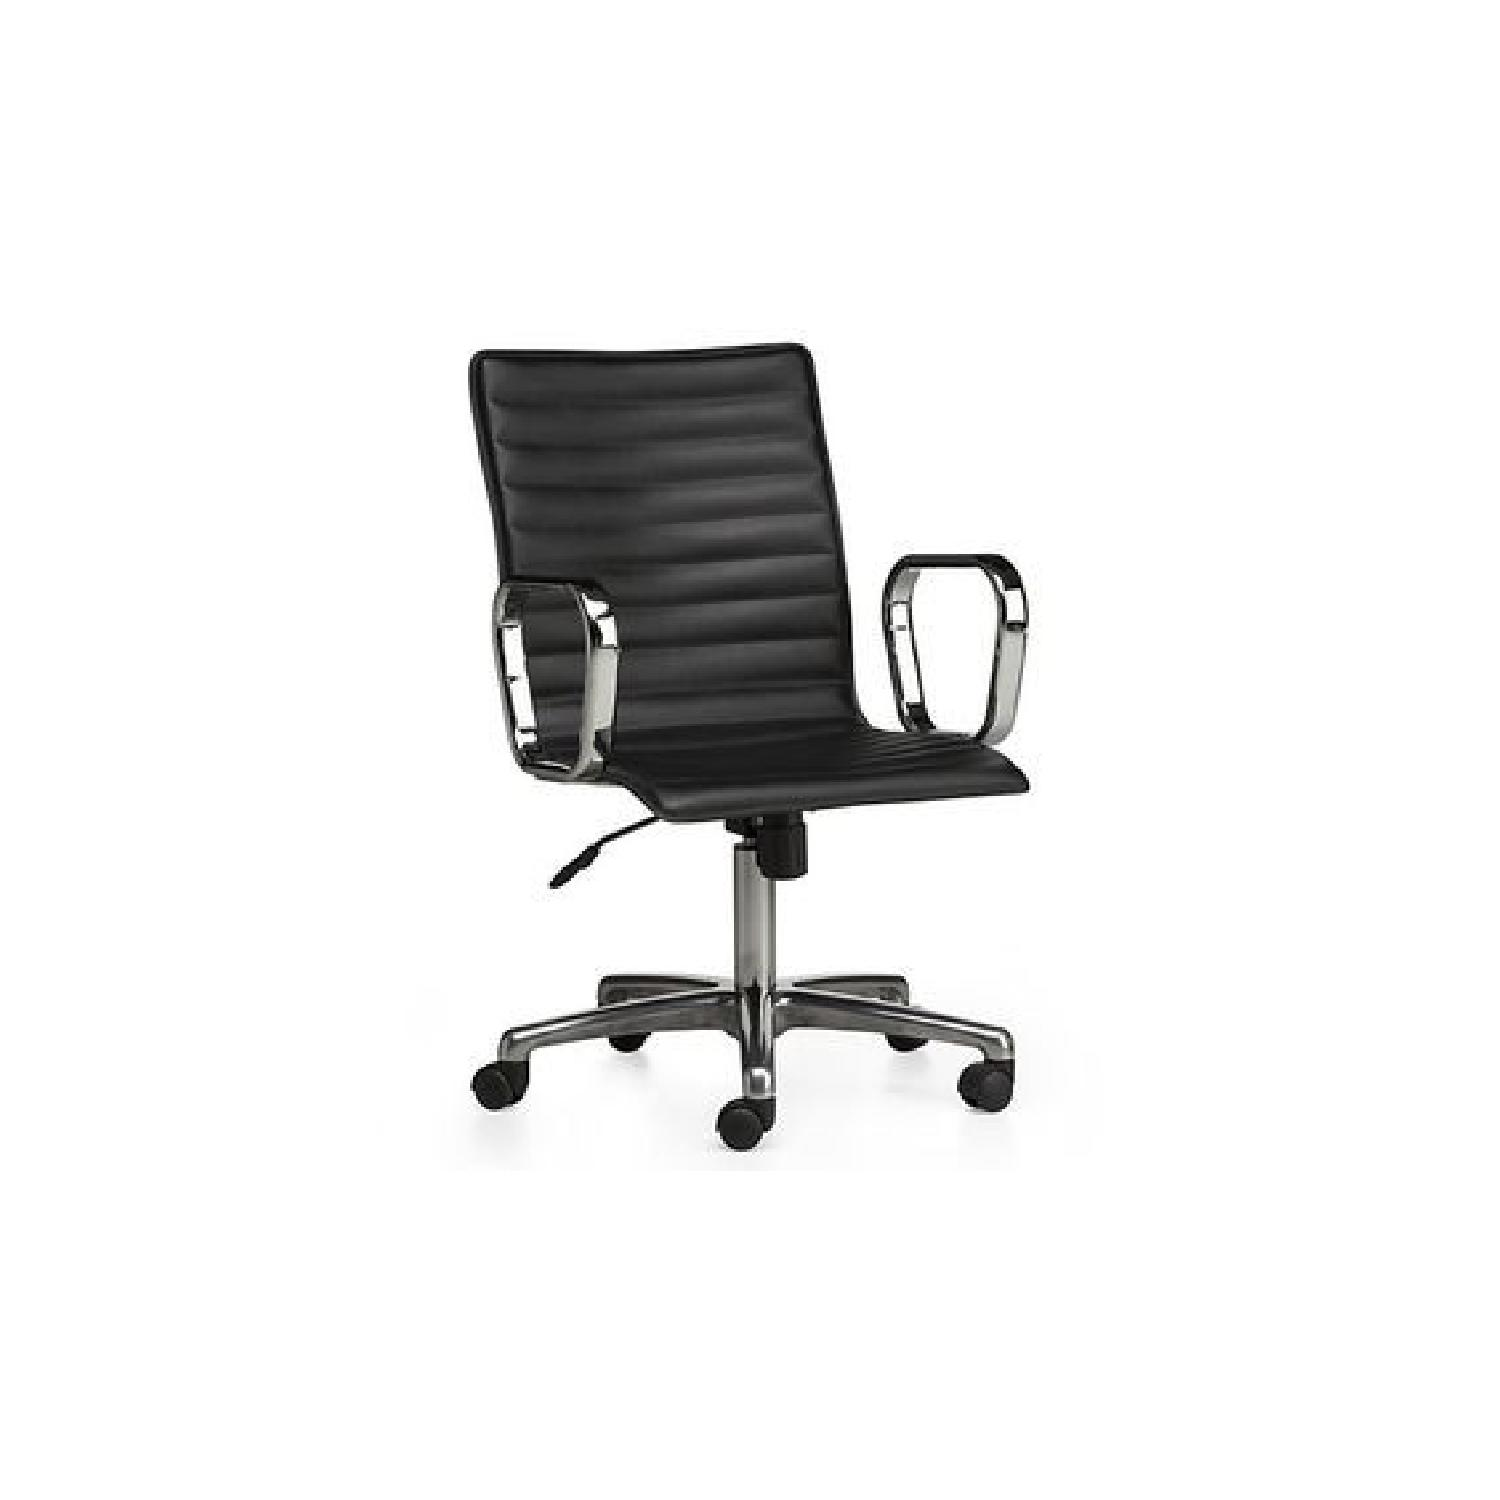 Crate Barrel Black Leather Office Chair Aptdeco